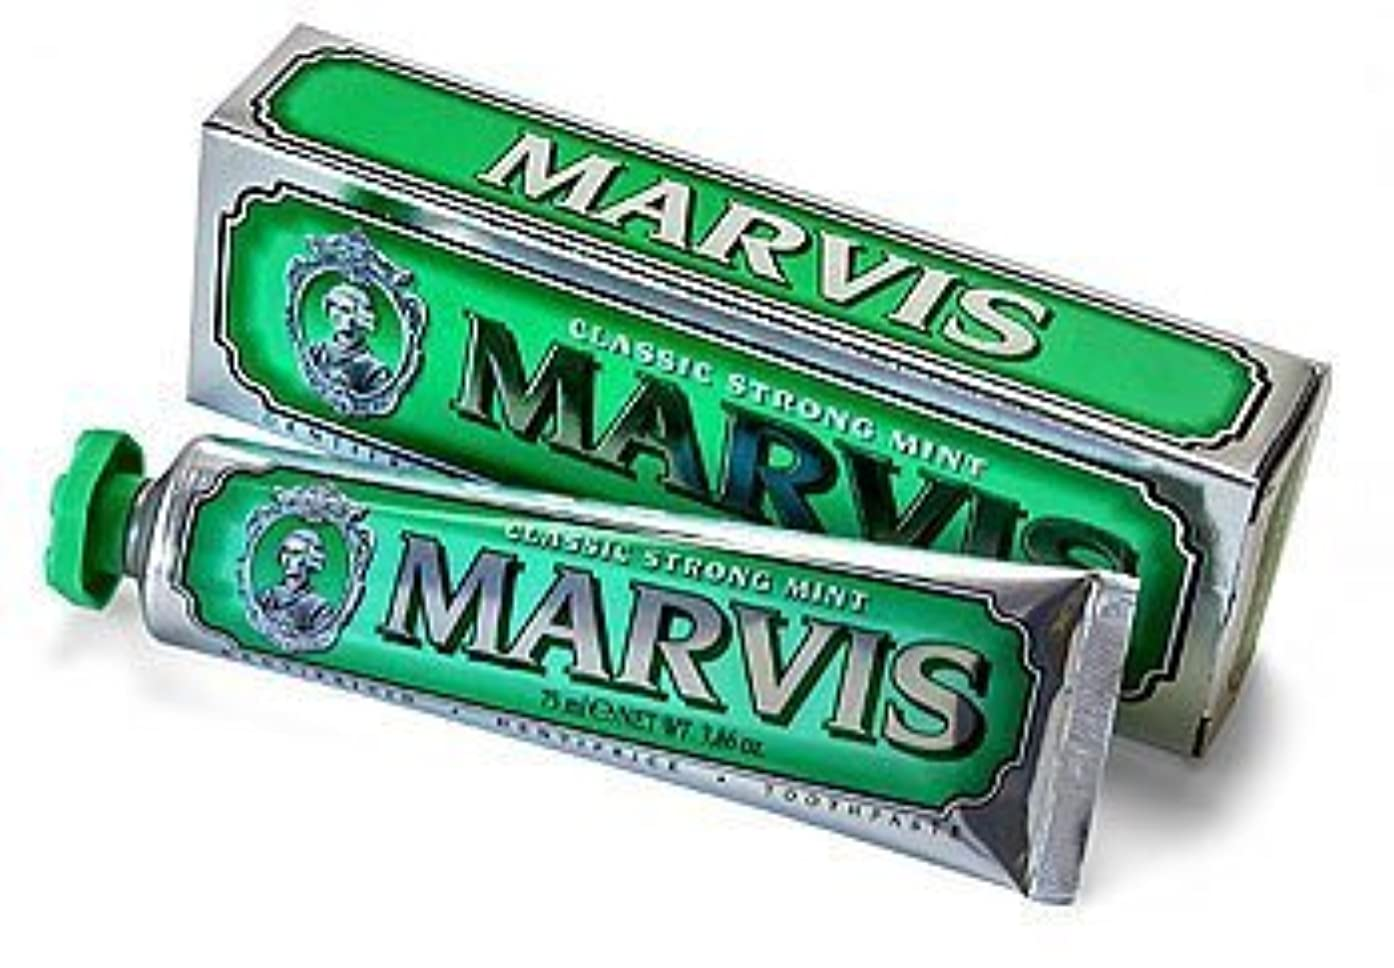 昇る役員厚くするMarvis Classic Strong Mint Toothpaste - 75ml by Marvis [並行輸入品]